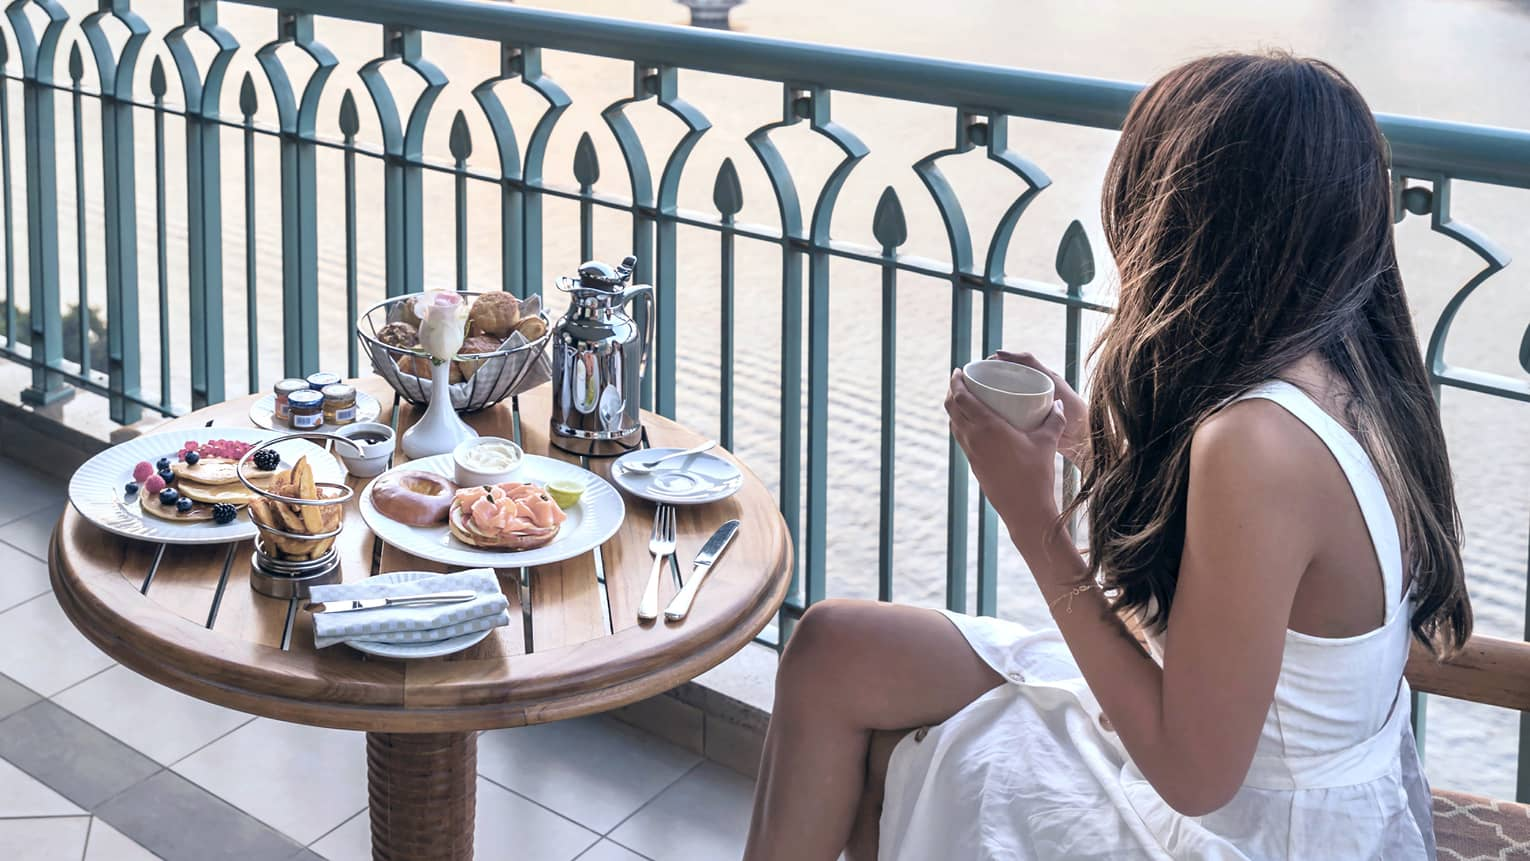 Dark-haired woman in white dress seated at balcony bistro table looking through railing at river and city views